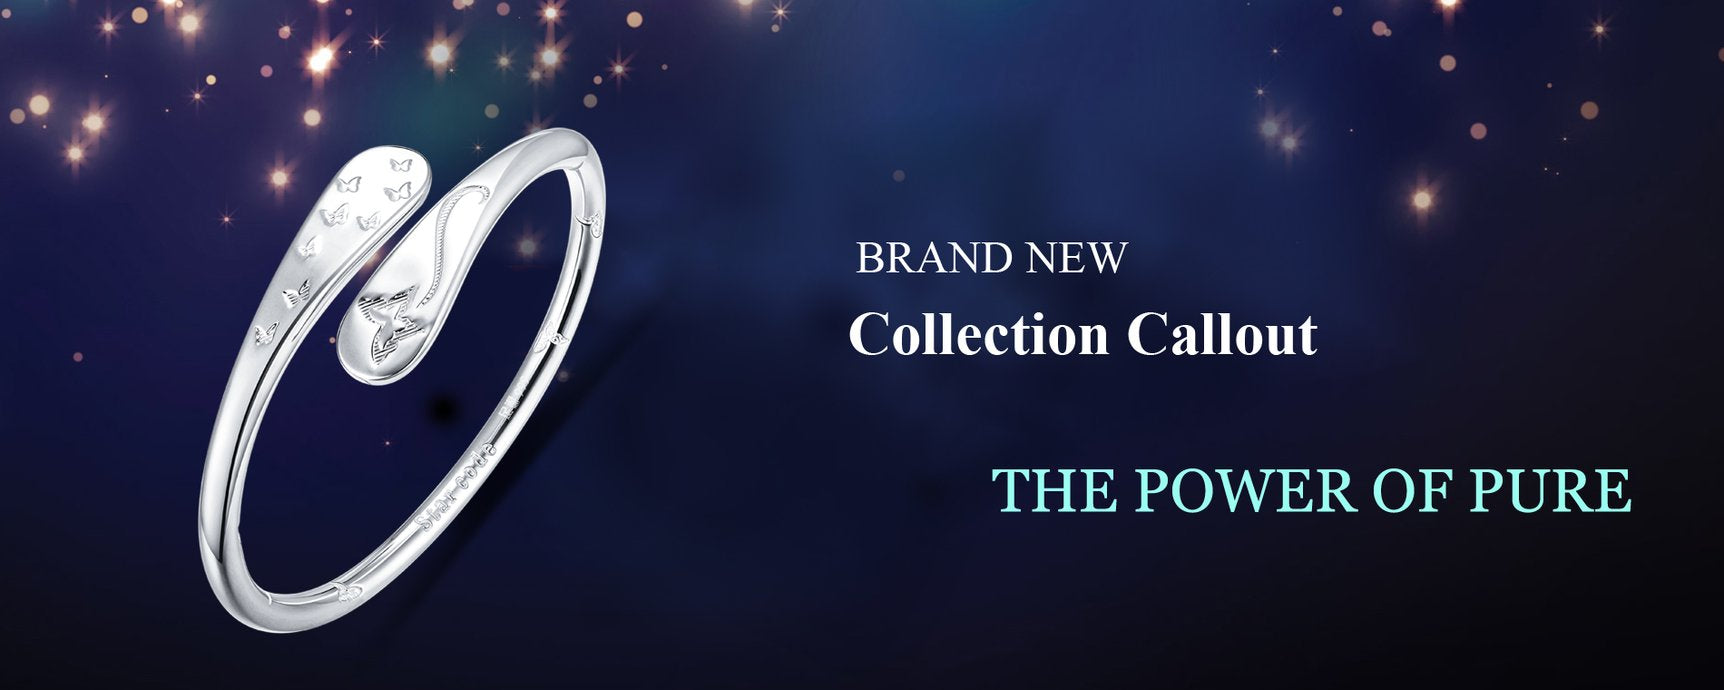 The Power of Pure Collection Callout banner